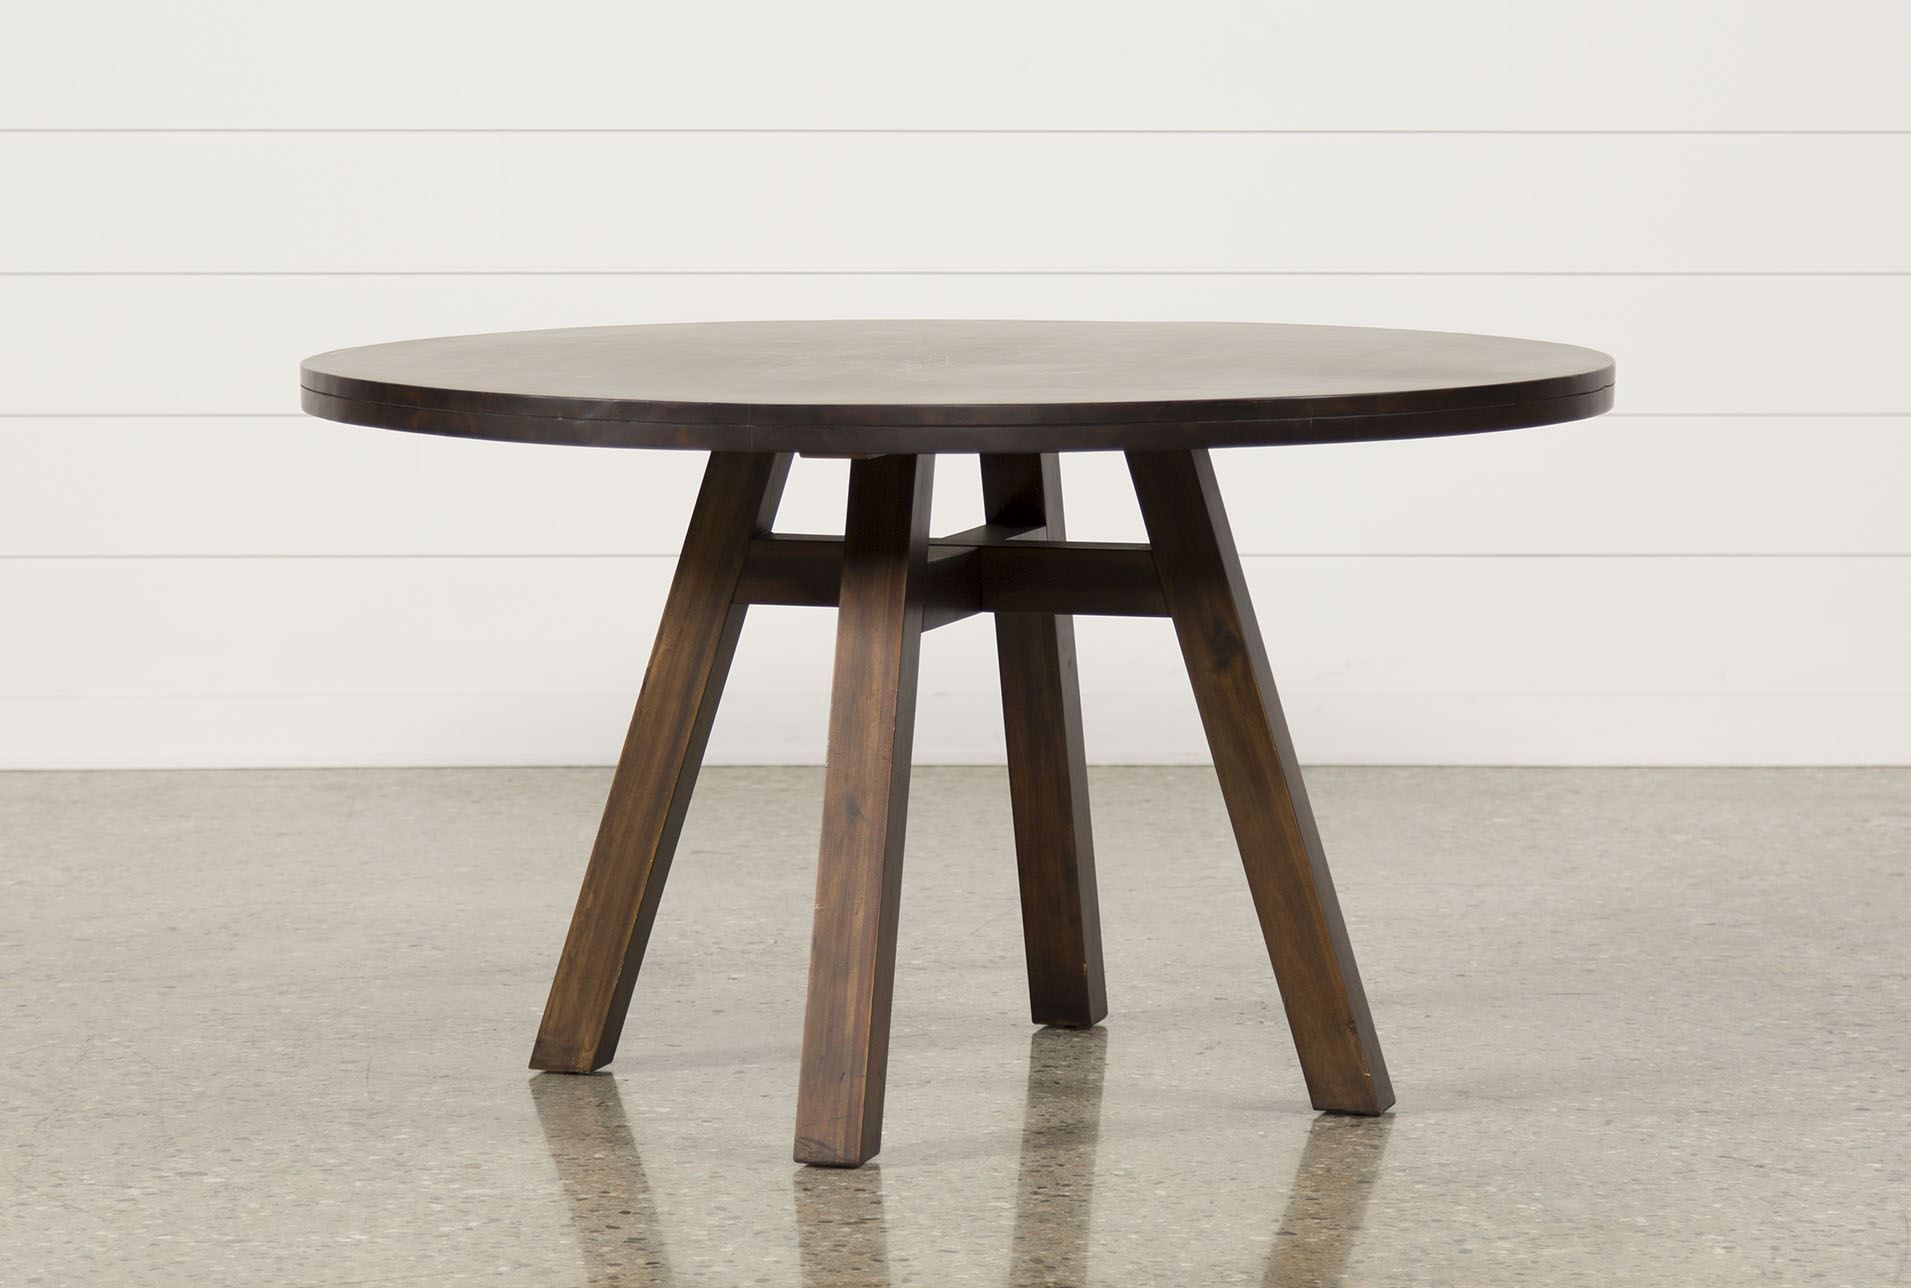 x1✅ Blake II Round Dining Table from Living Spaces